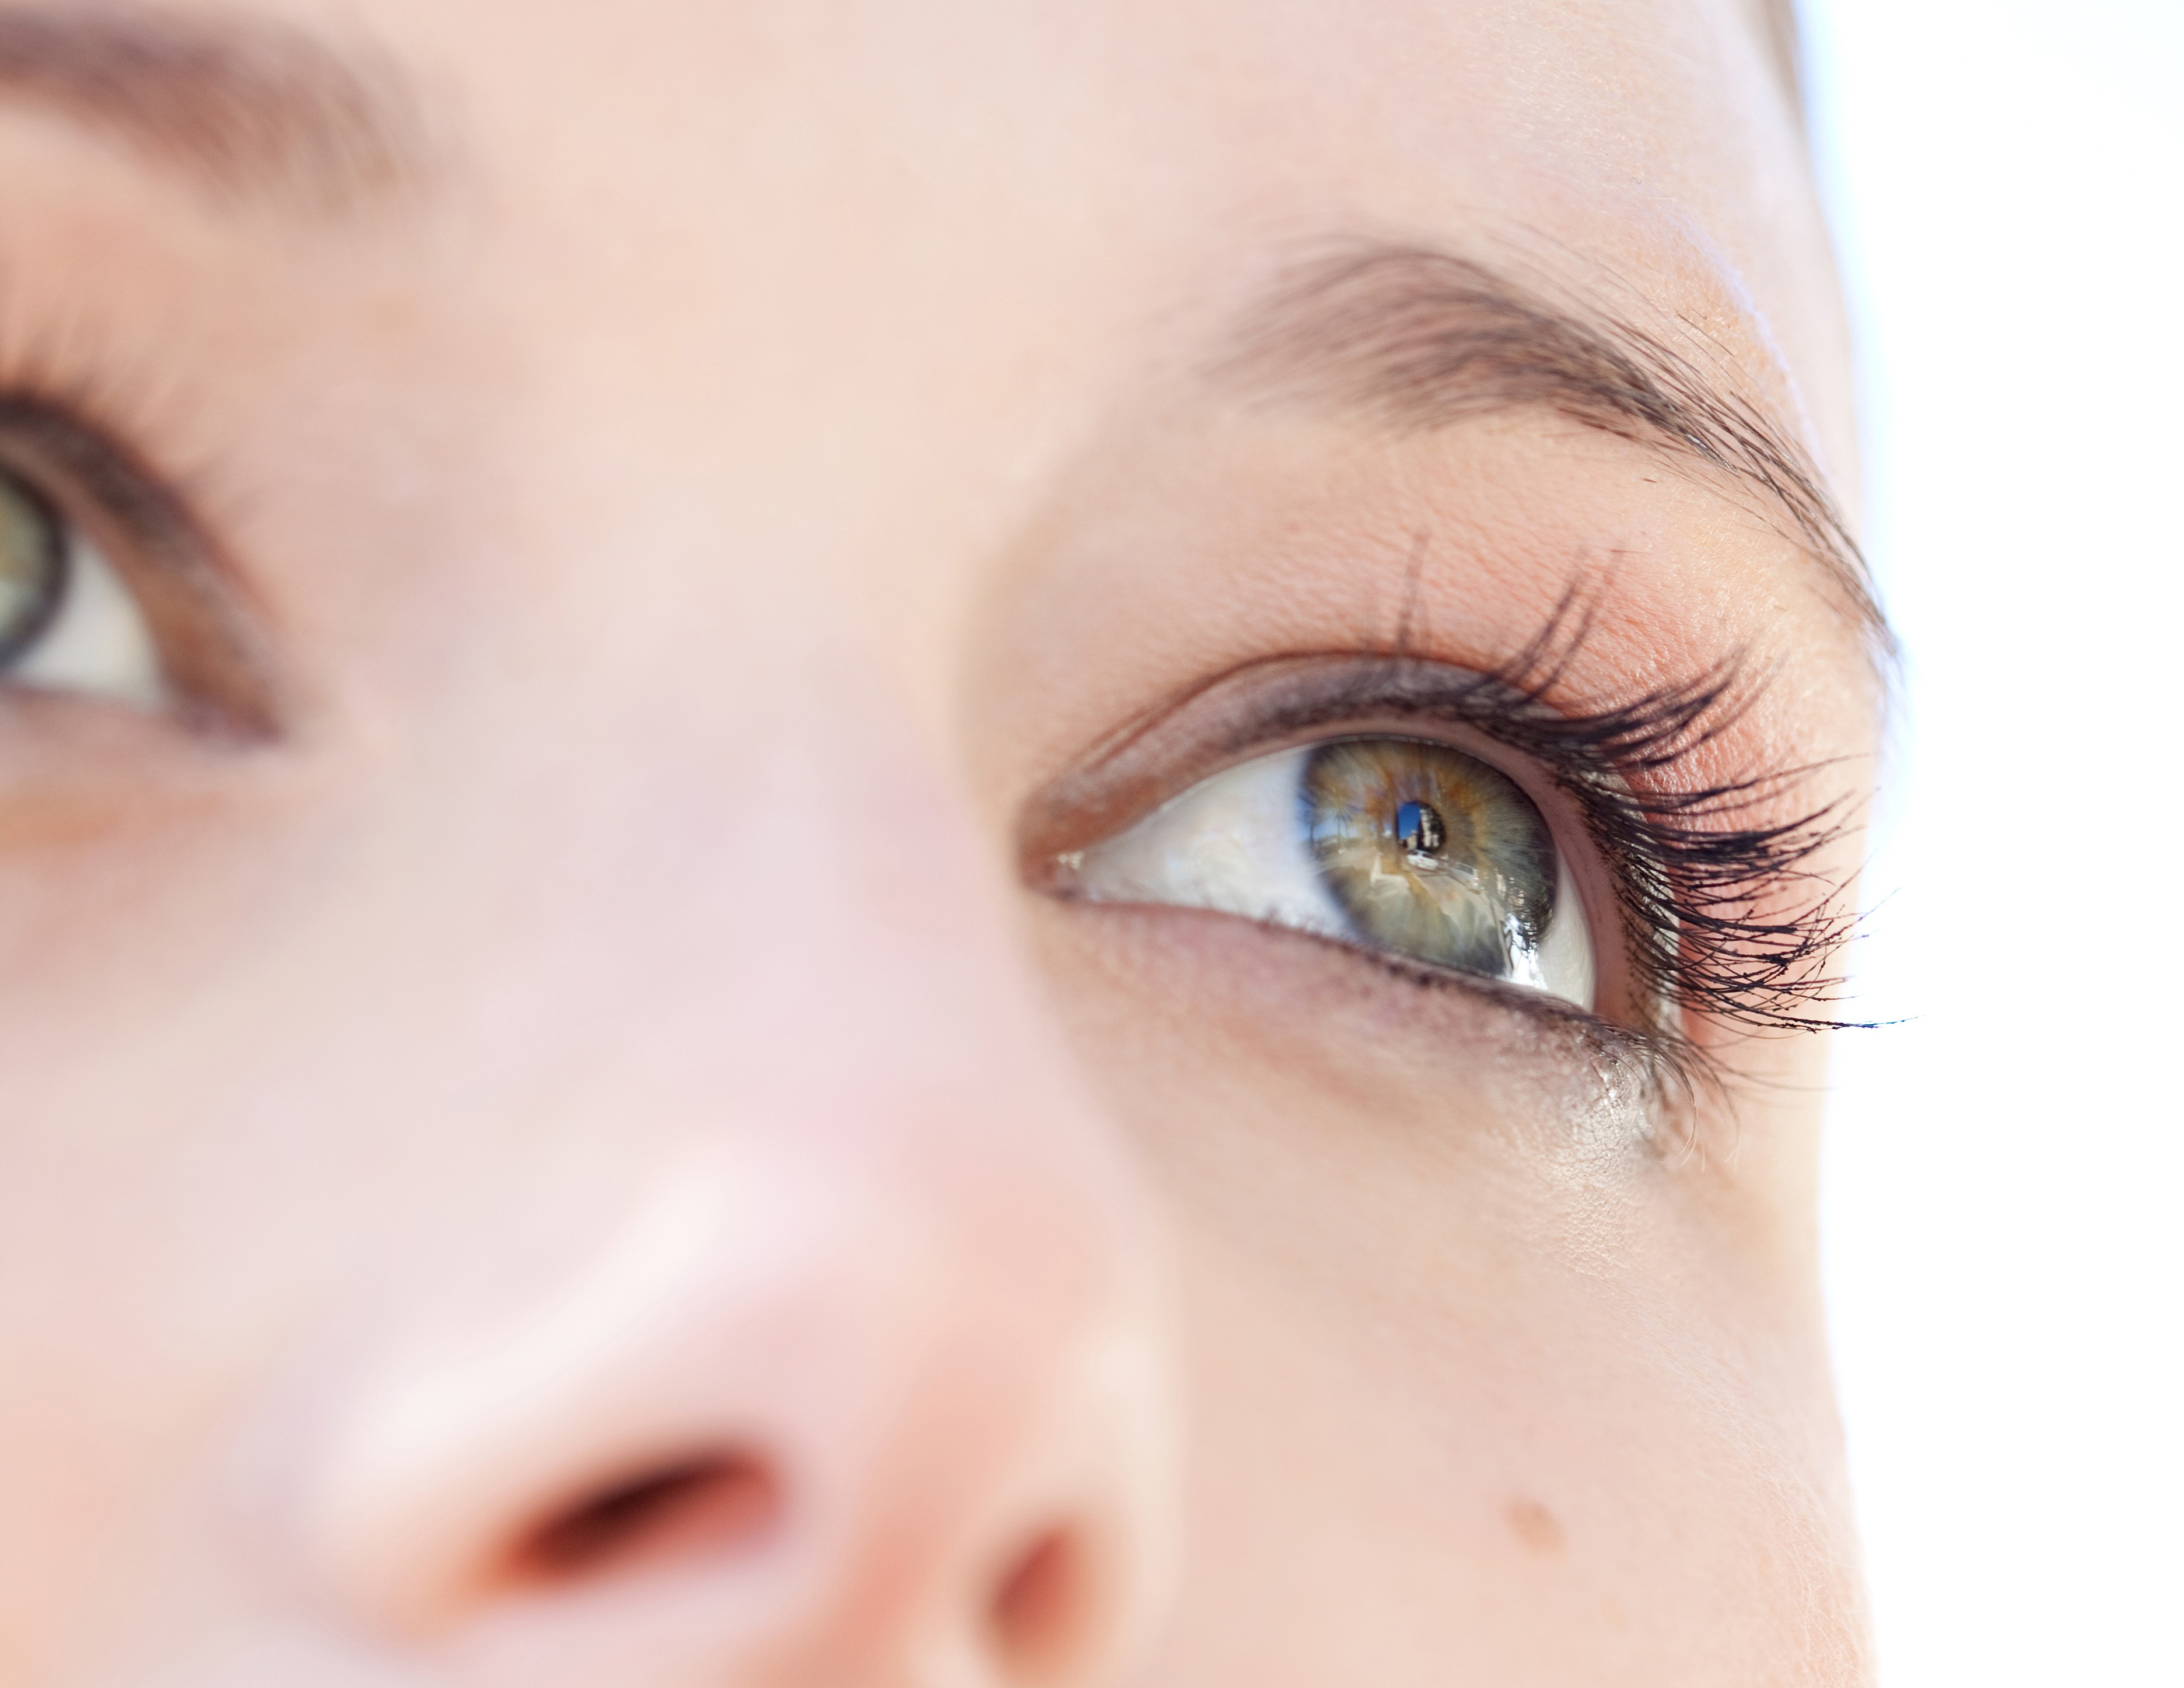 What will Help Your Droopy Eyelid?